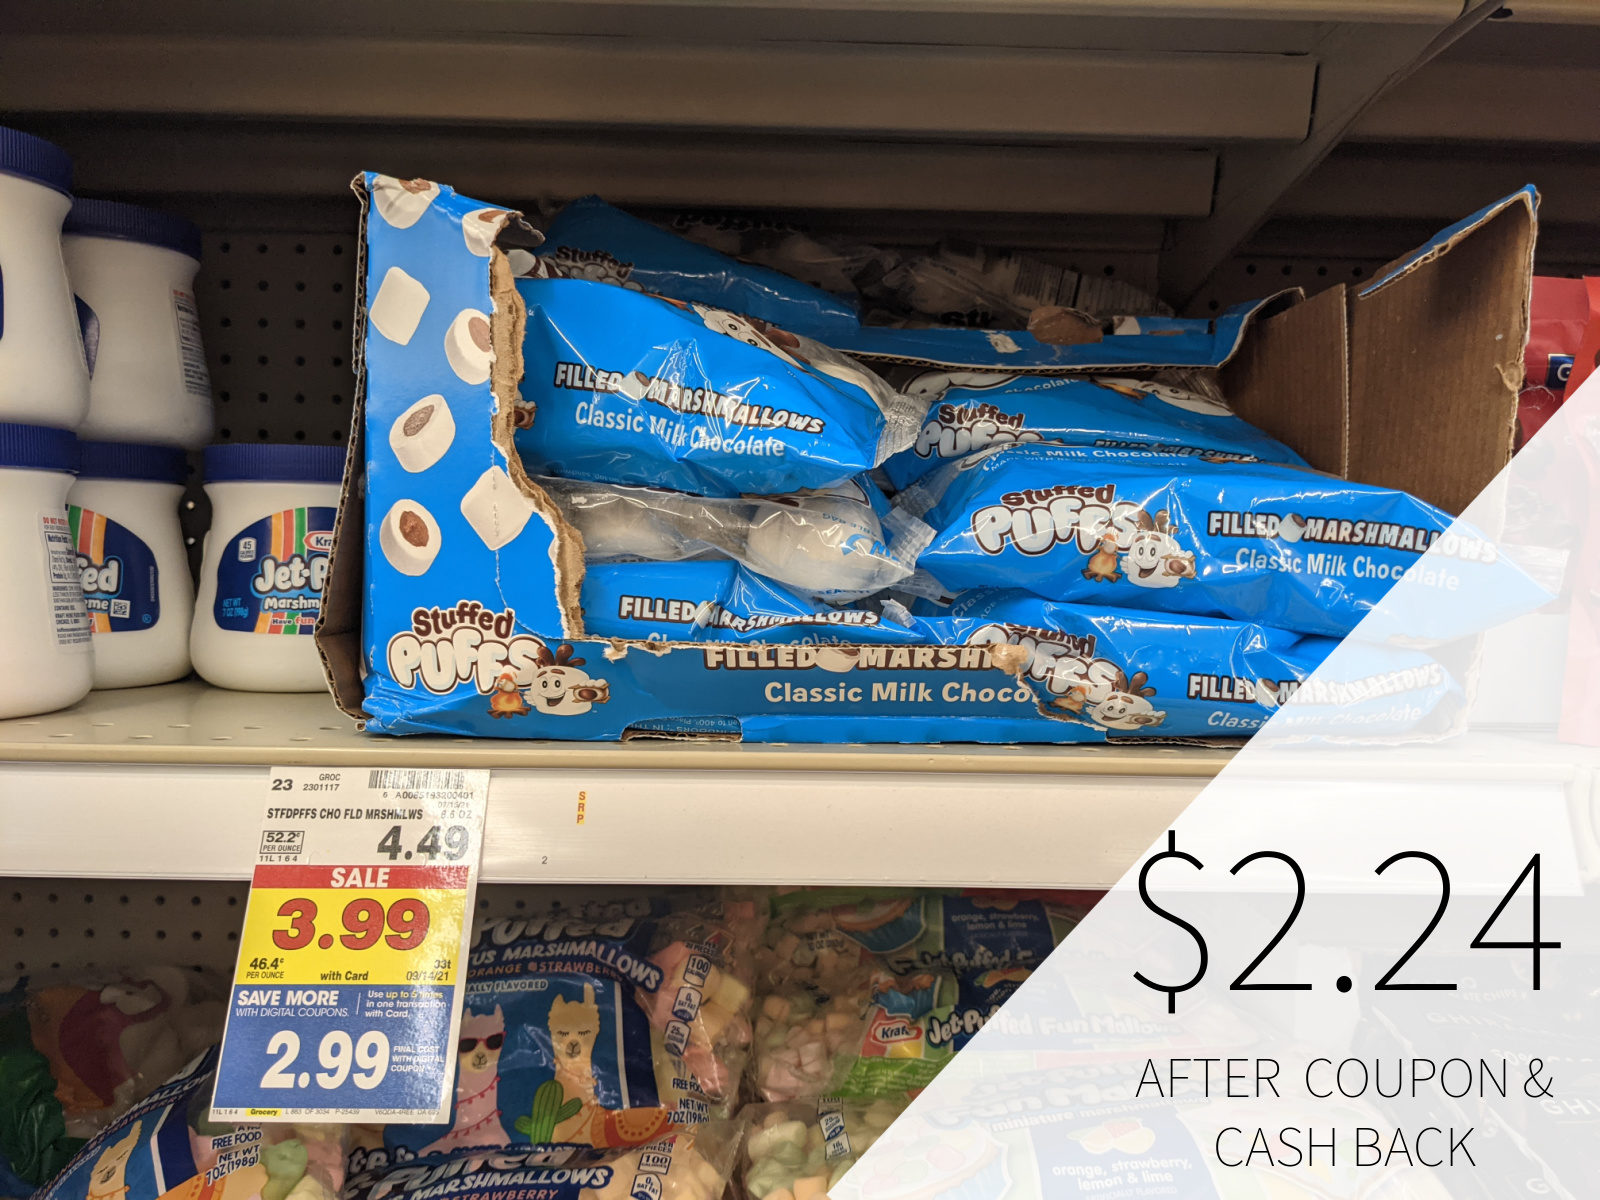 Stuffed Puffs Filled Marshmallows Only .49 At Kroger 1